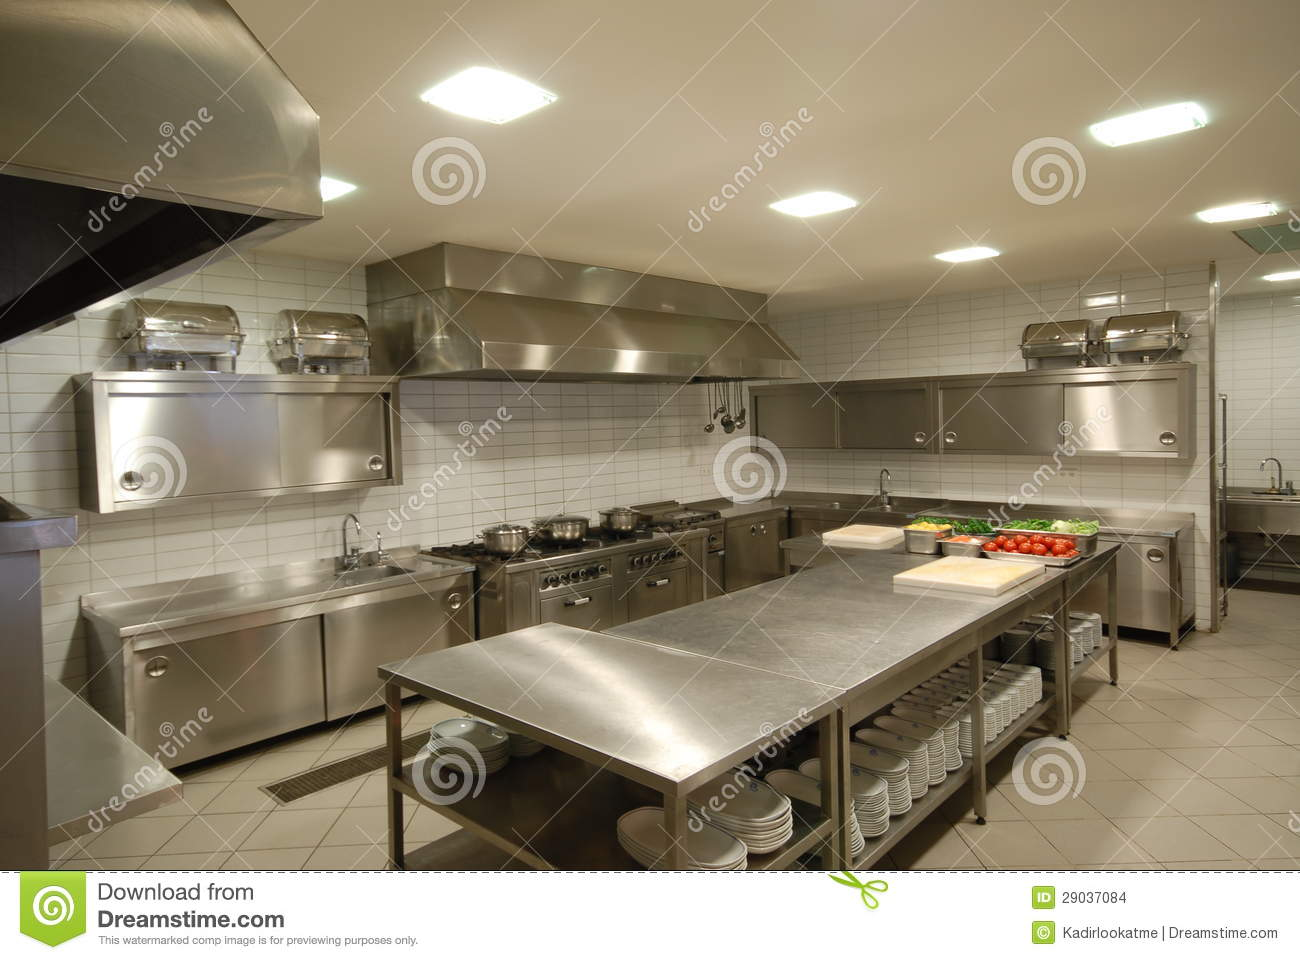 Tapis Chambre Bebe Occasion : Modern Kitchen In Restaurant Stock Images  Image 29037084